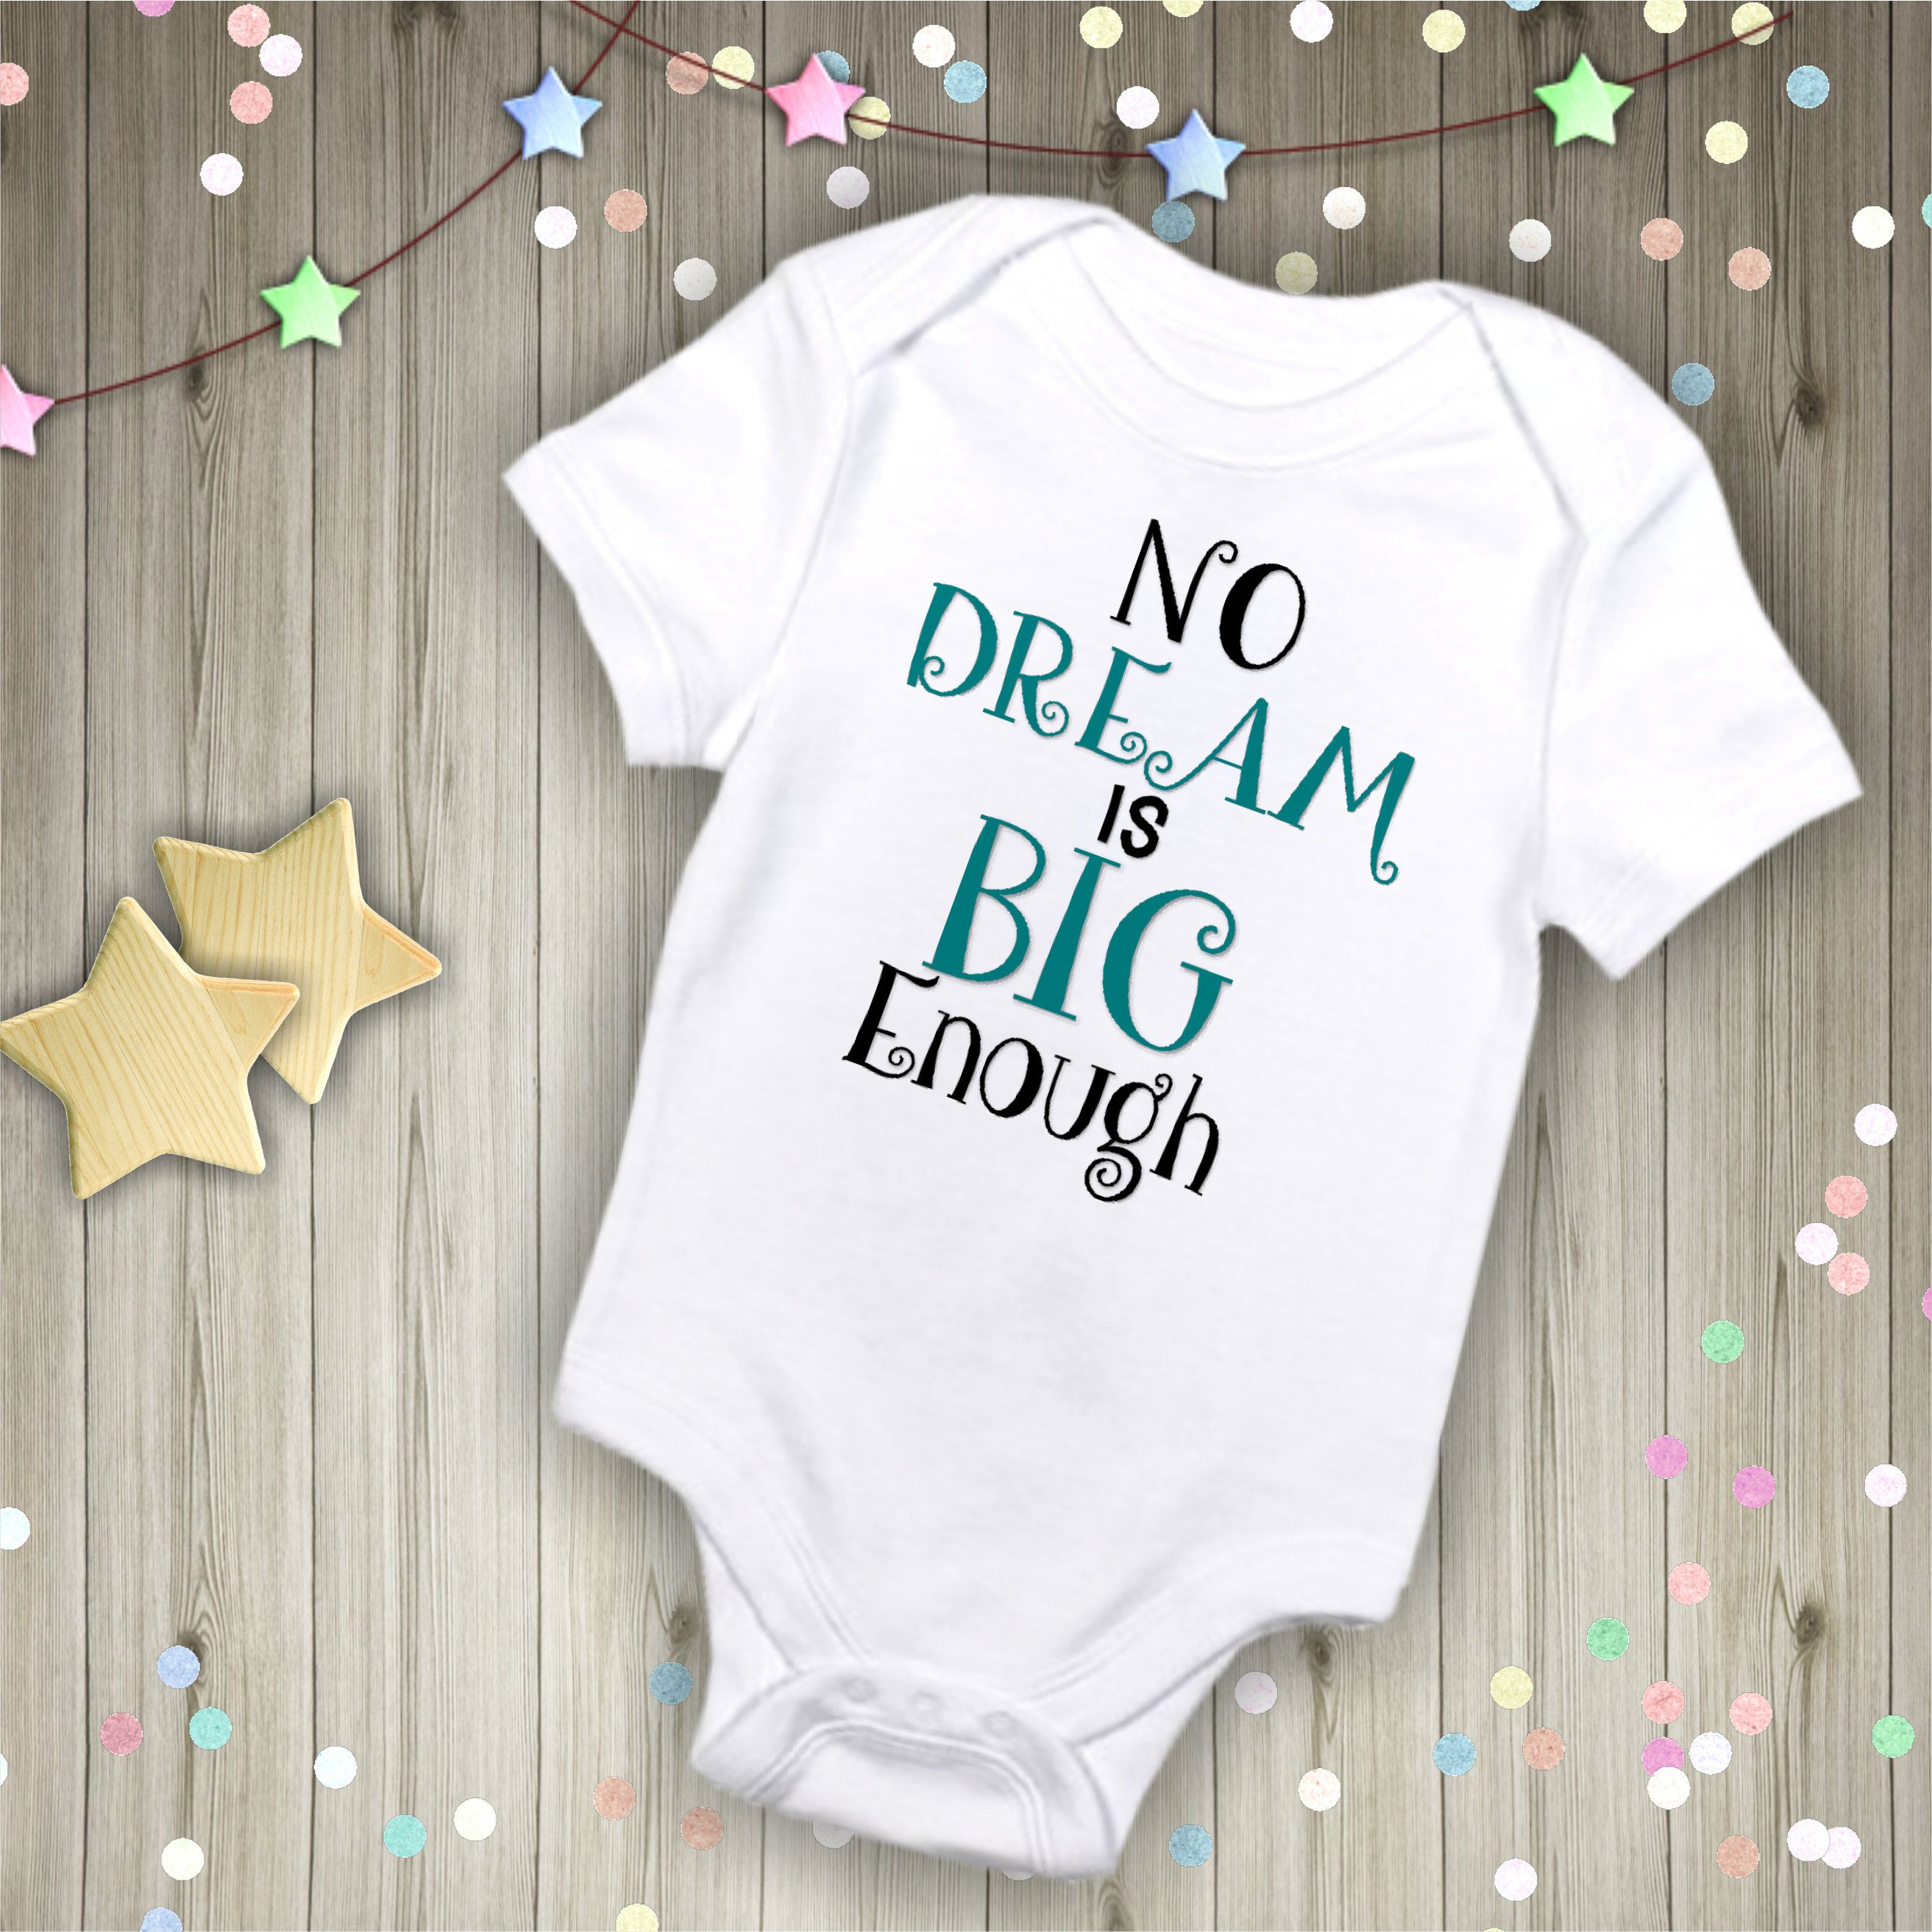 Custom 100 White Polyester With Sublimation Inspirational Design Infant Onesie Baby Romper Baby Bodys Baby Milestones Pictures Baby Bodysuit Baby Milestones